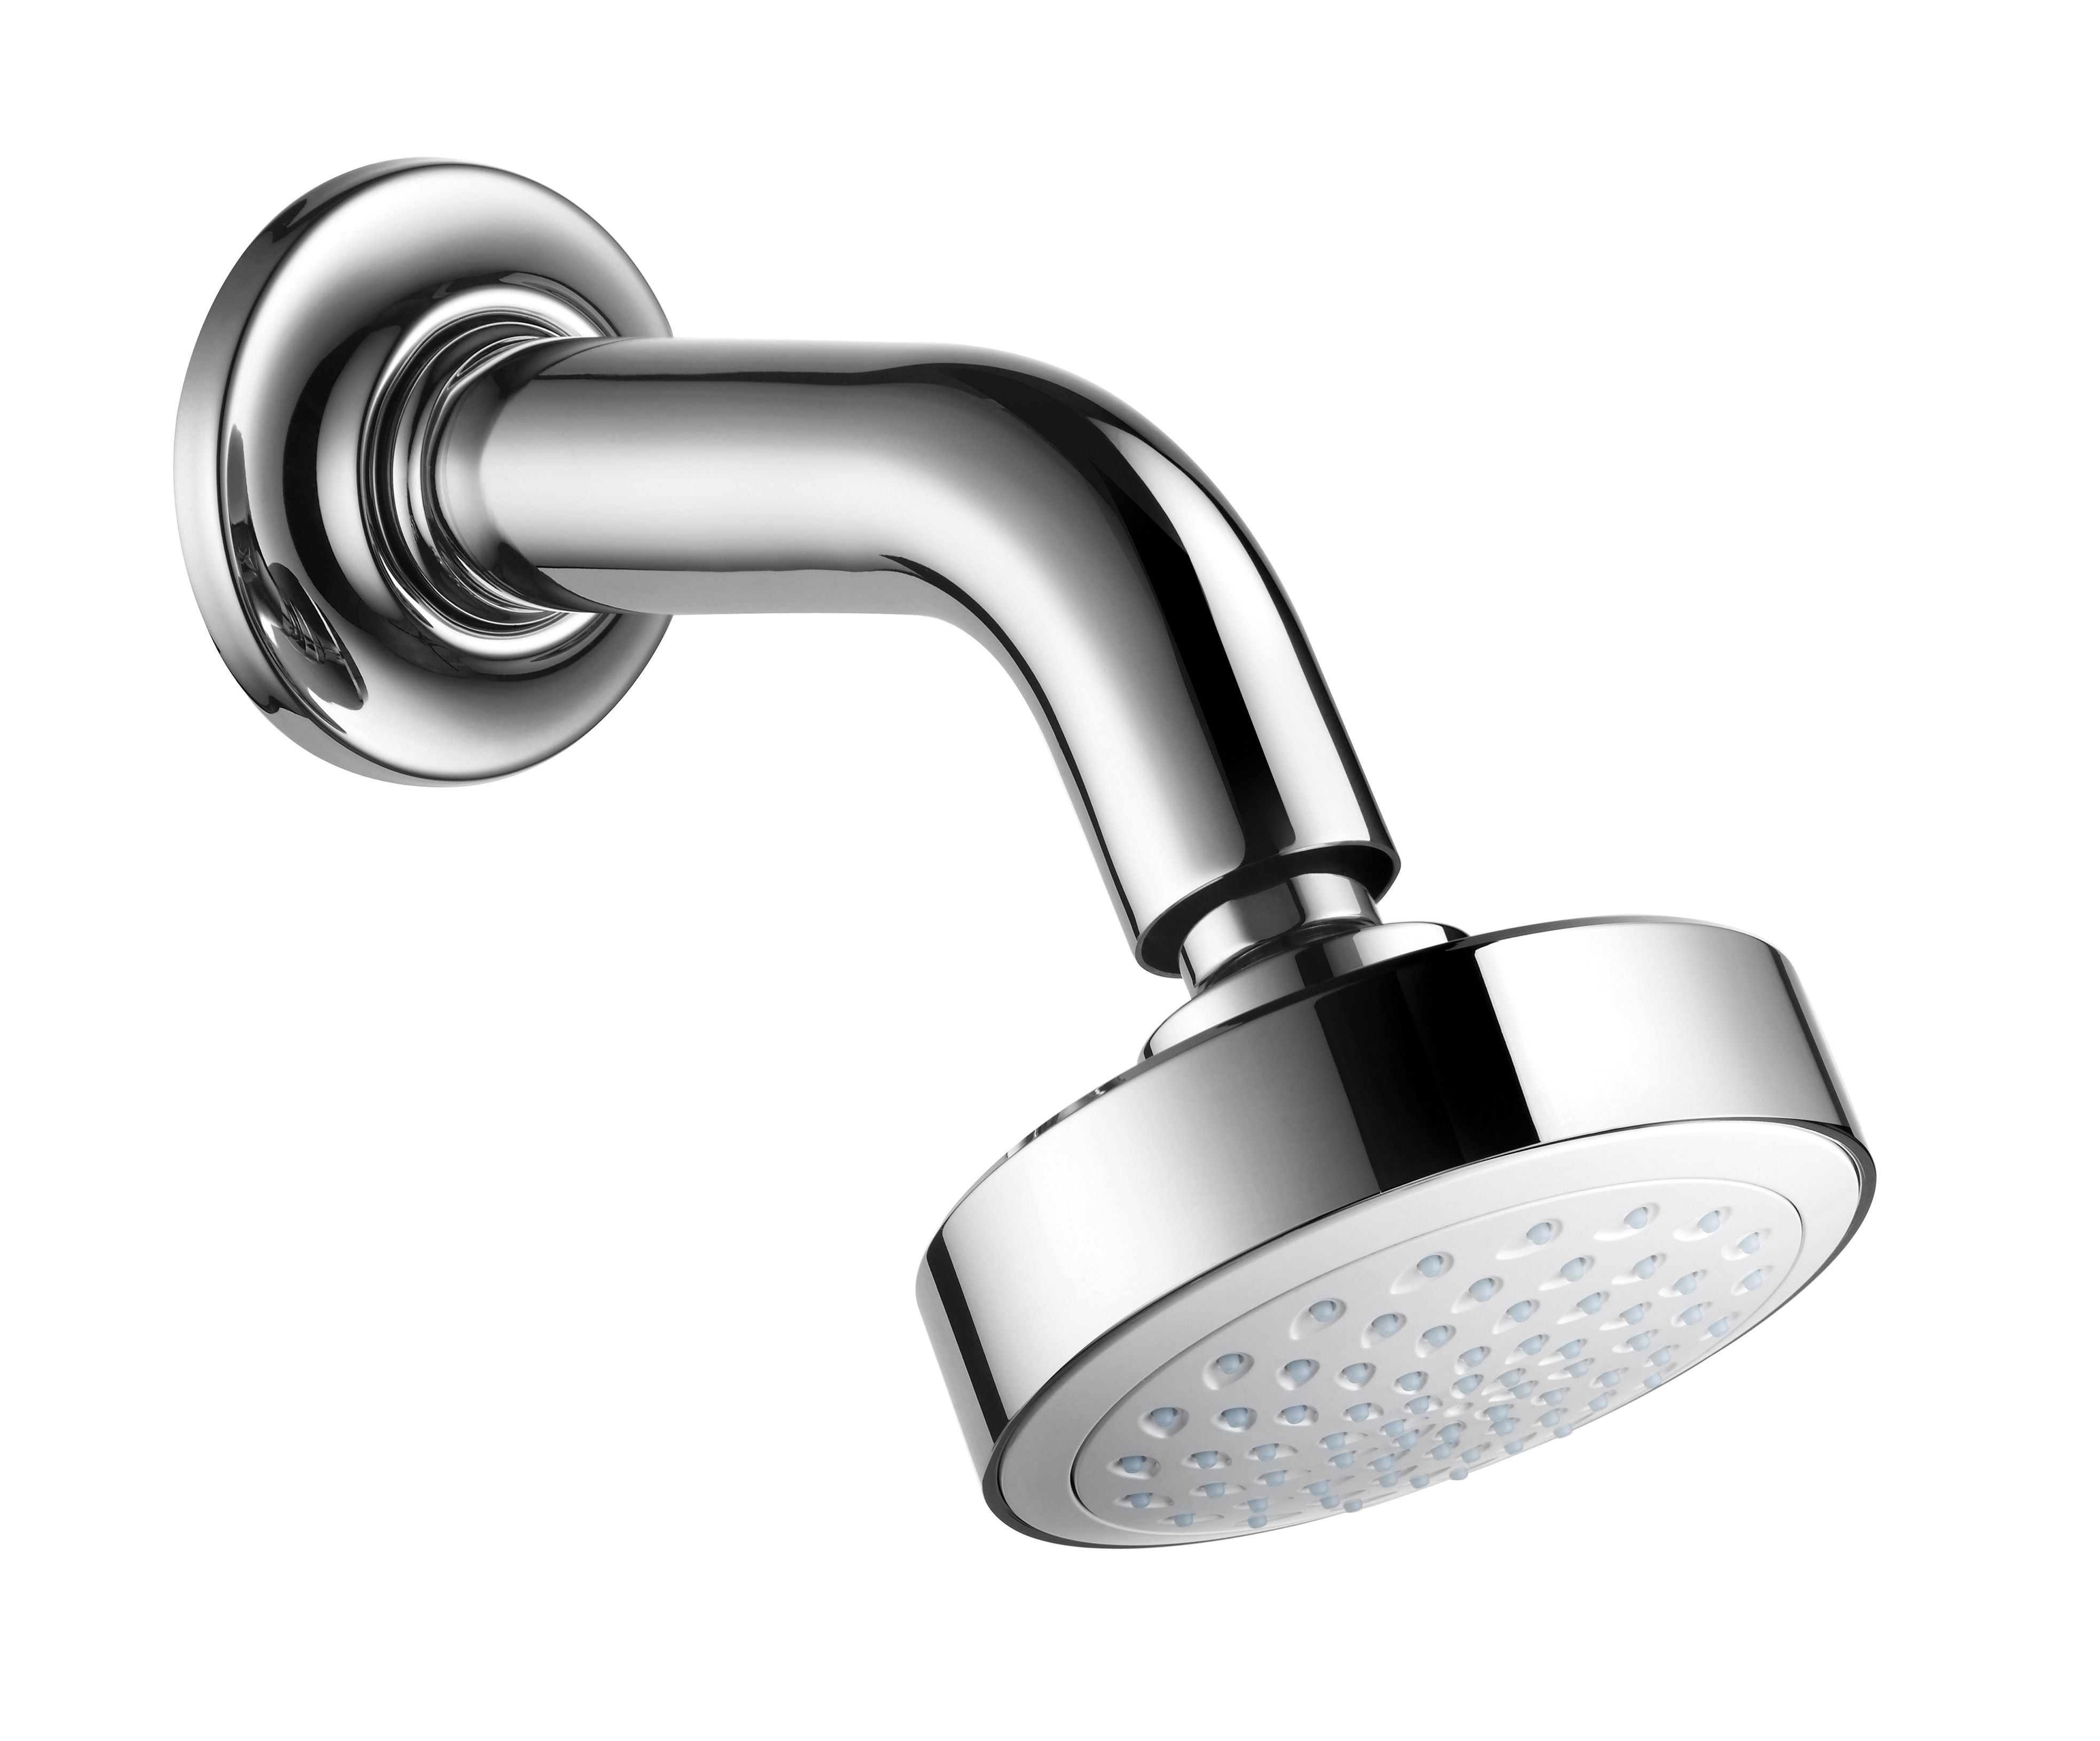 The Mira Beat Fixed Showerhead And Arm Is A Great